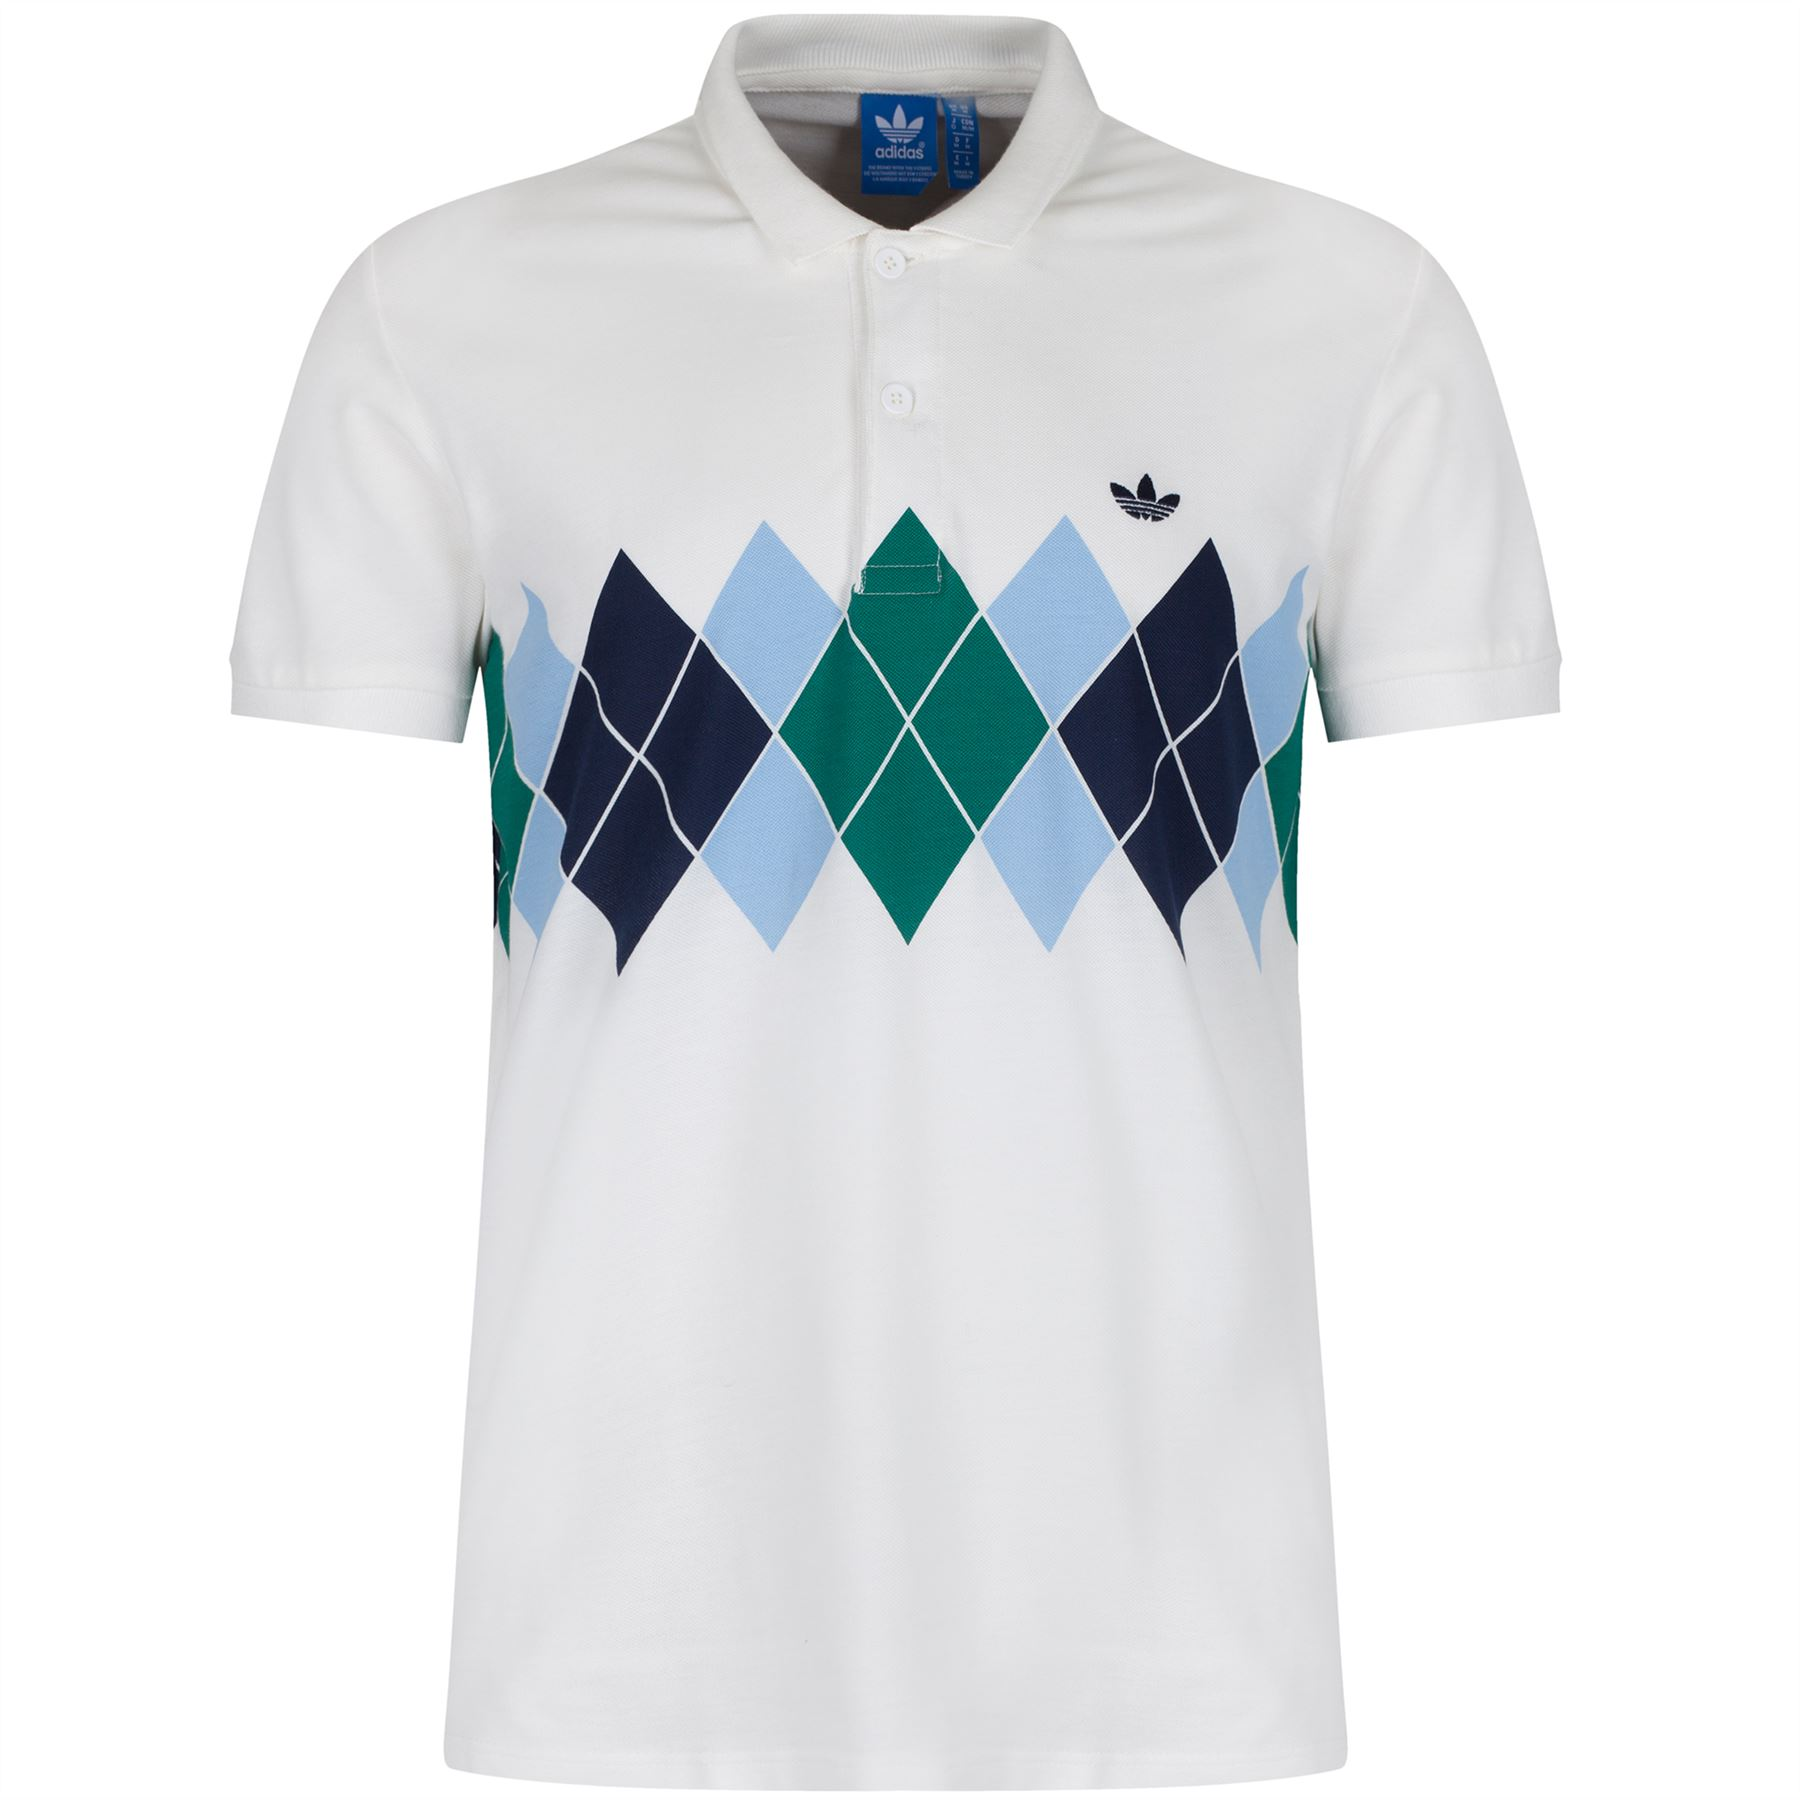 ADIDAS ORIGINALS ARGYLE POLO SHIRT RETRO 80s TENNIS